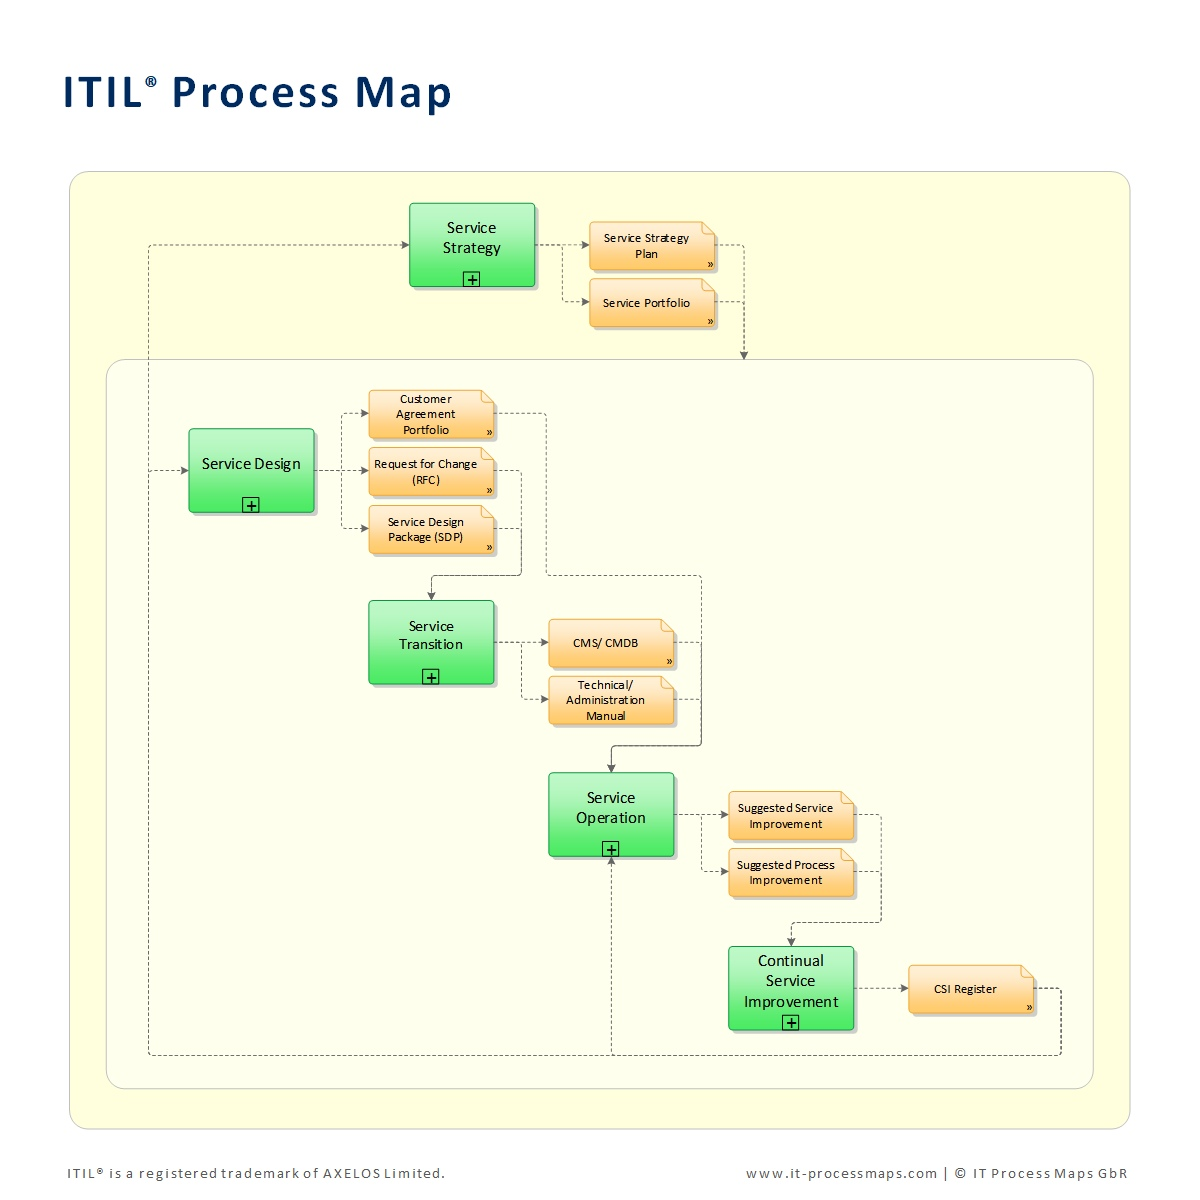 ITIL Process Templates - The ITIL Process Map